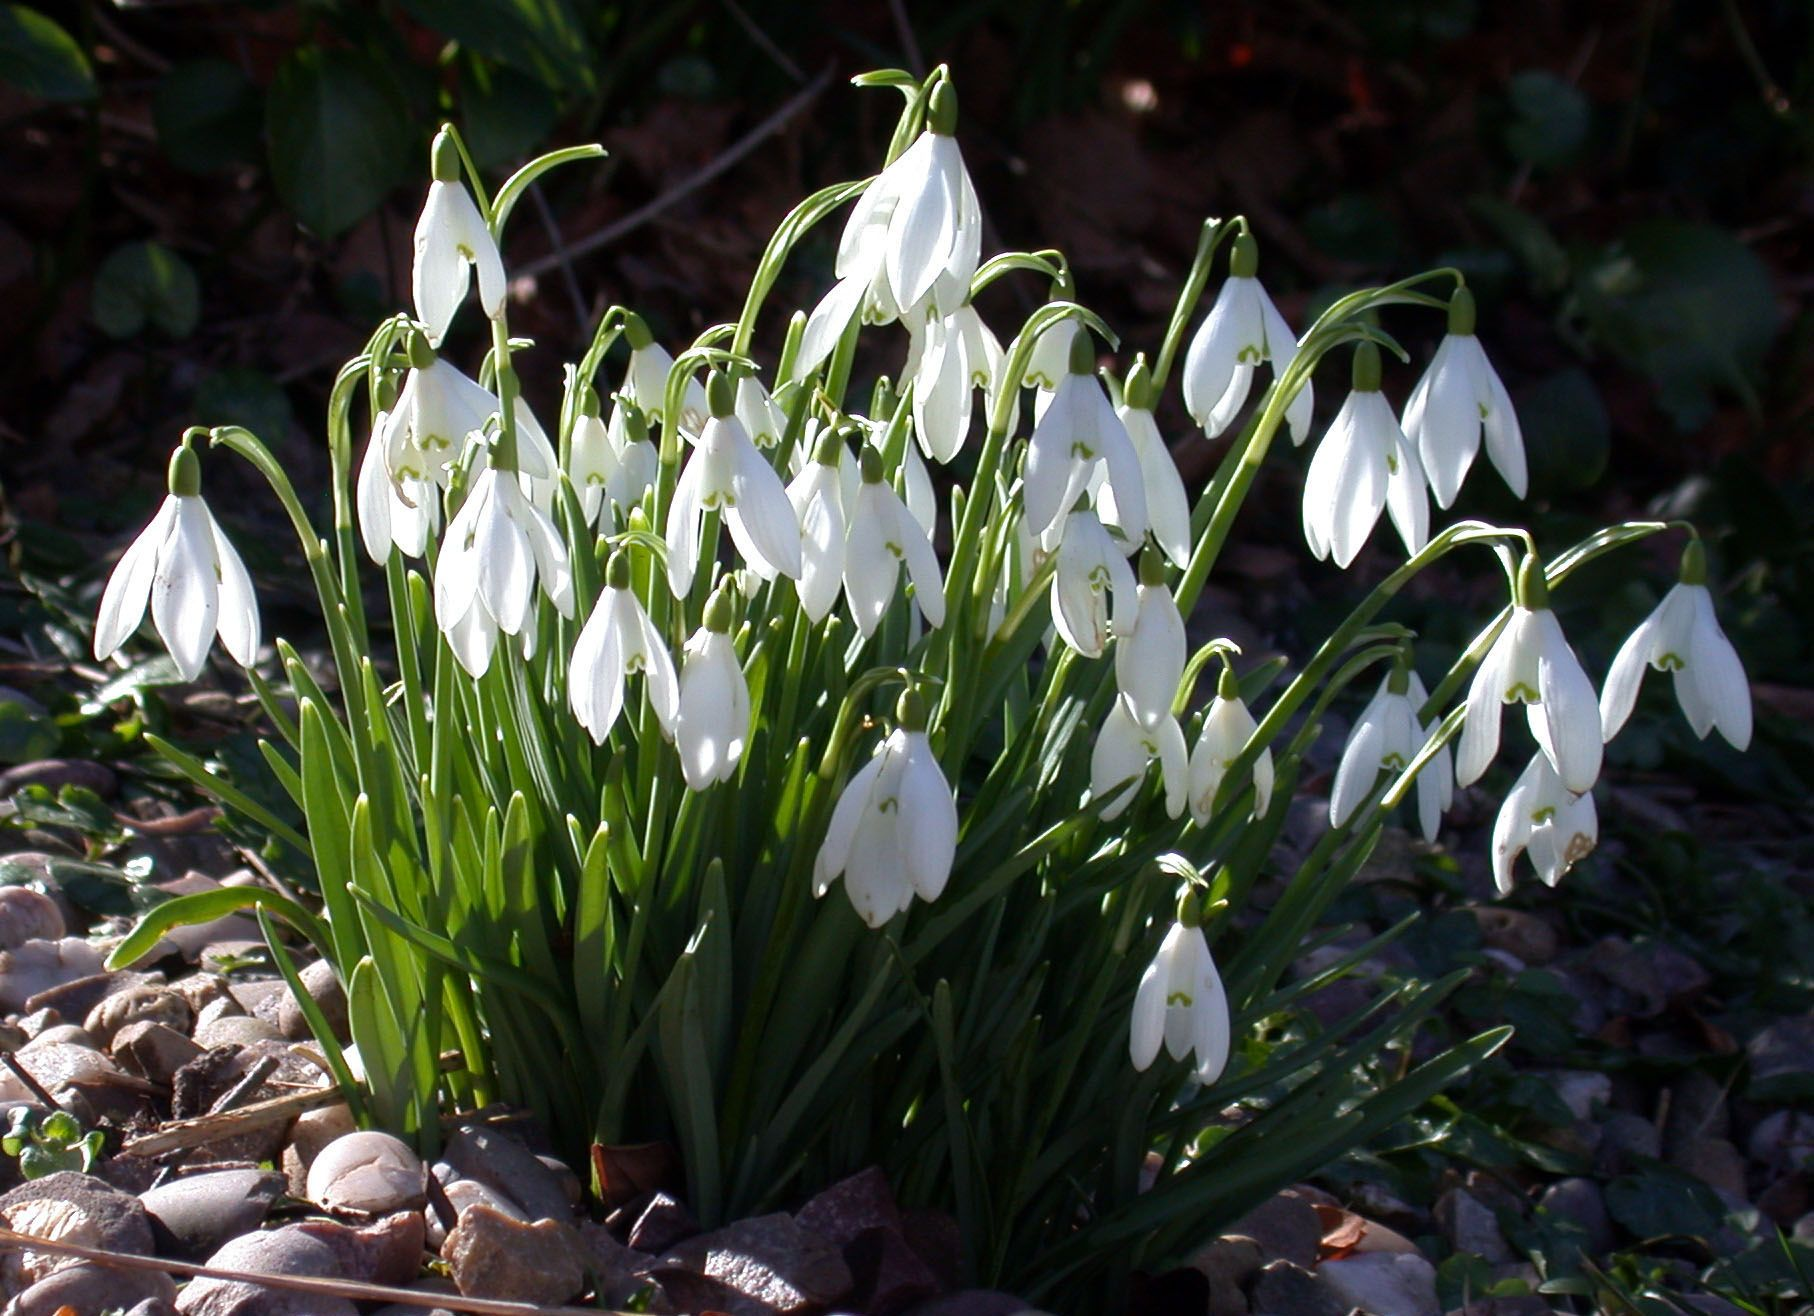 Snowdrops The Promise Of Spring Spring Flowering Bulbs Early Spring Flowers Bulb Flowers